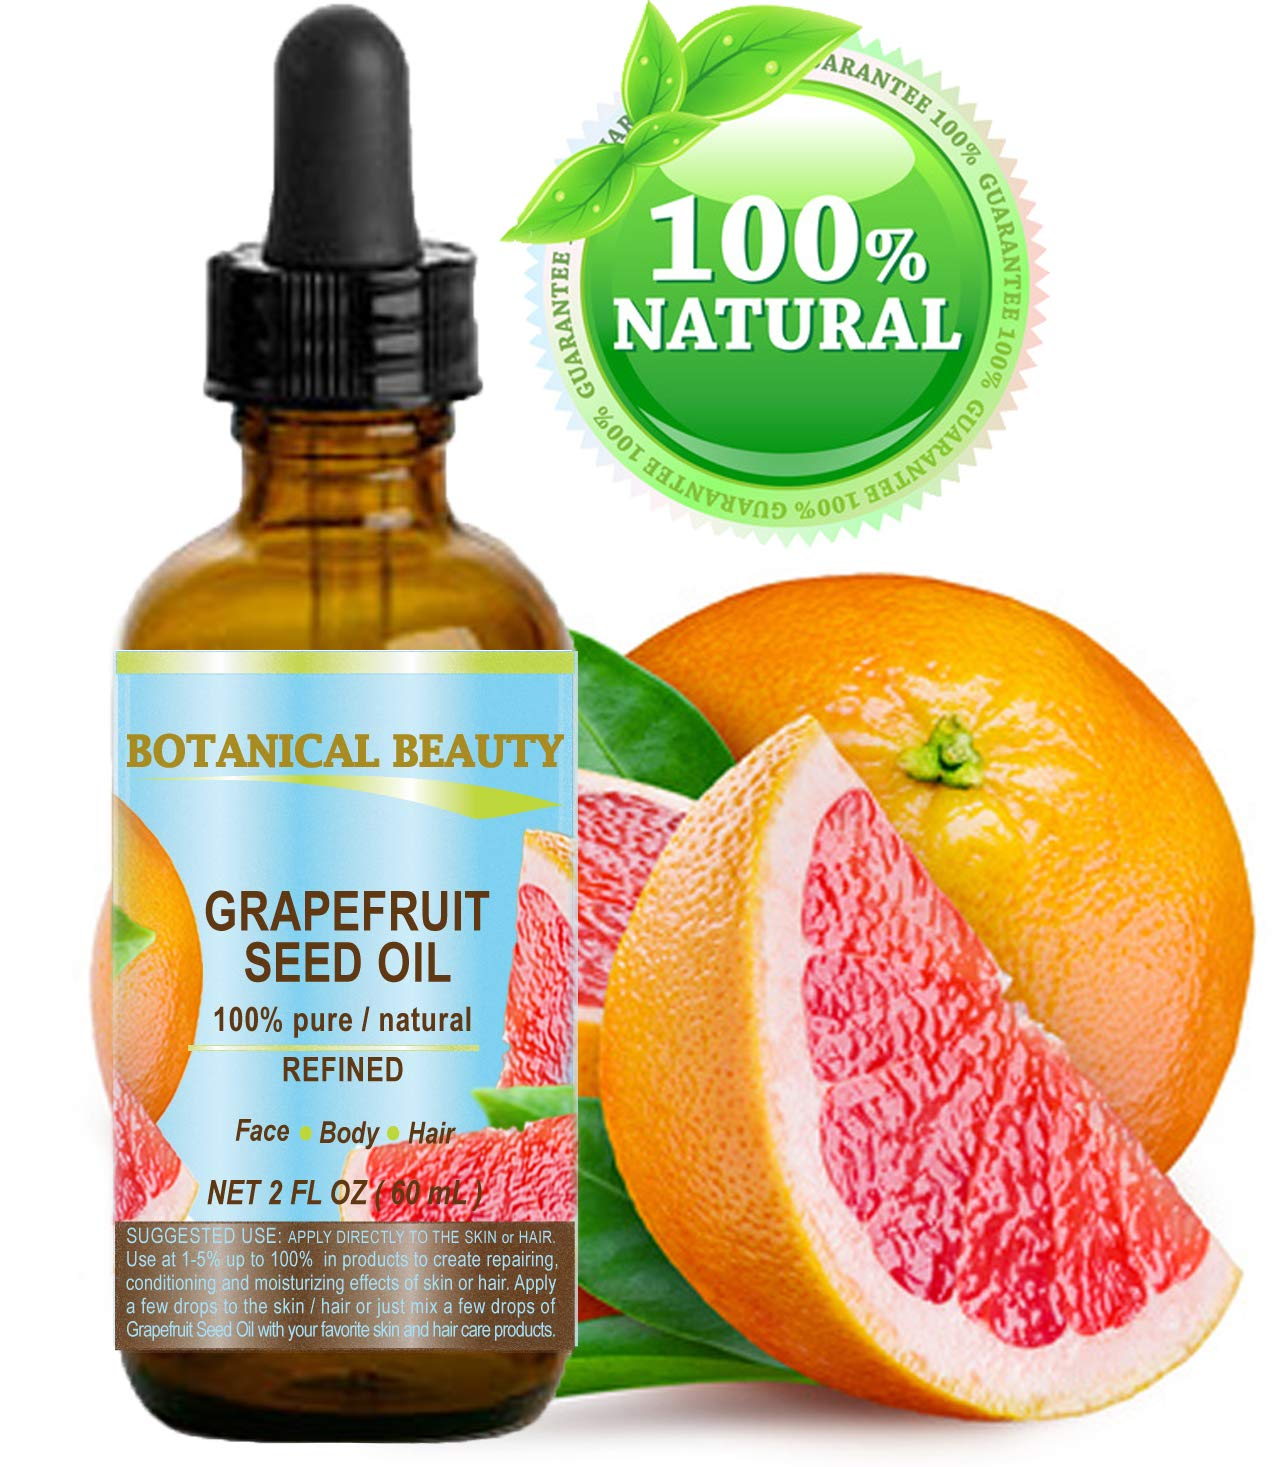 Botanical Beauty GRAPEFRUIT SEED OIL. 100% Pure Natural Undiluted Refined COLD PRESSED CARRIER OIL (NOT ESSENTIAL OIL). 2 Fl.oz.- 60 ml. For Skin, Hair and Lip Care.